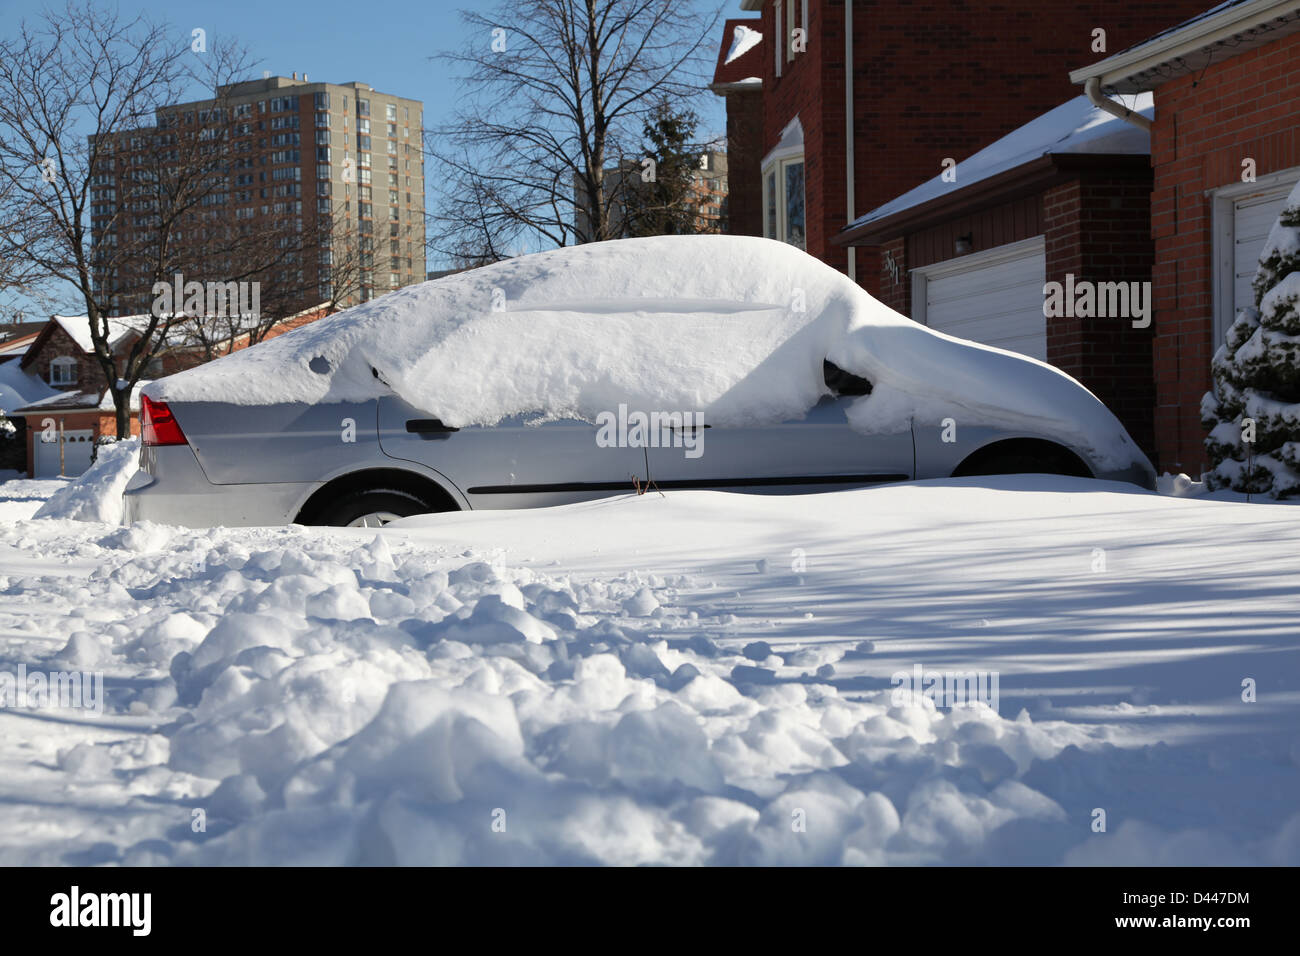 parked car cover snow - Stock Image